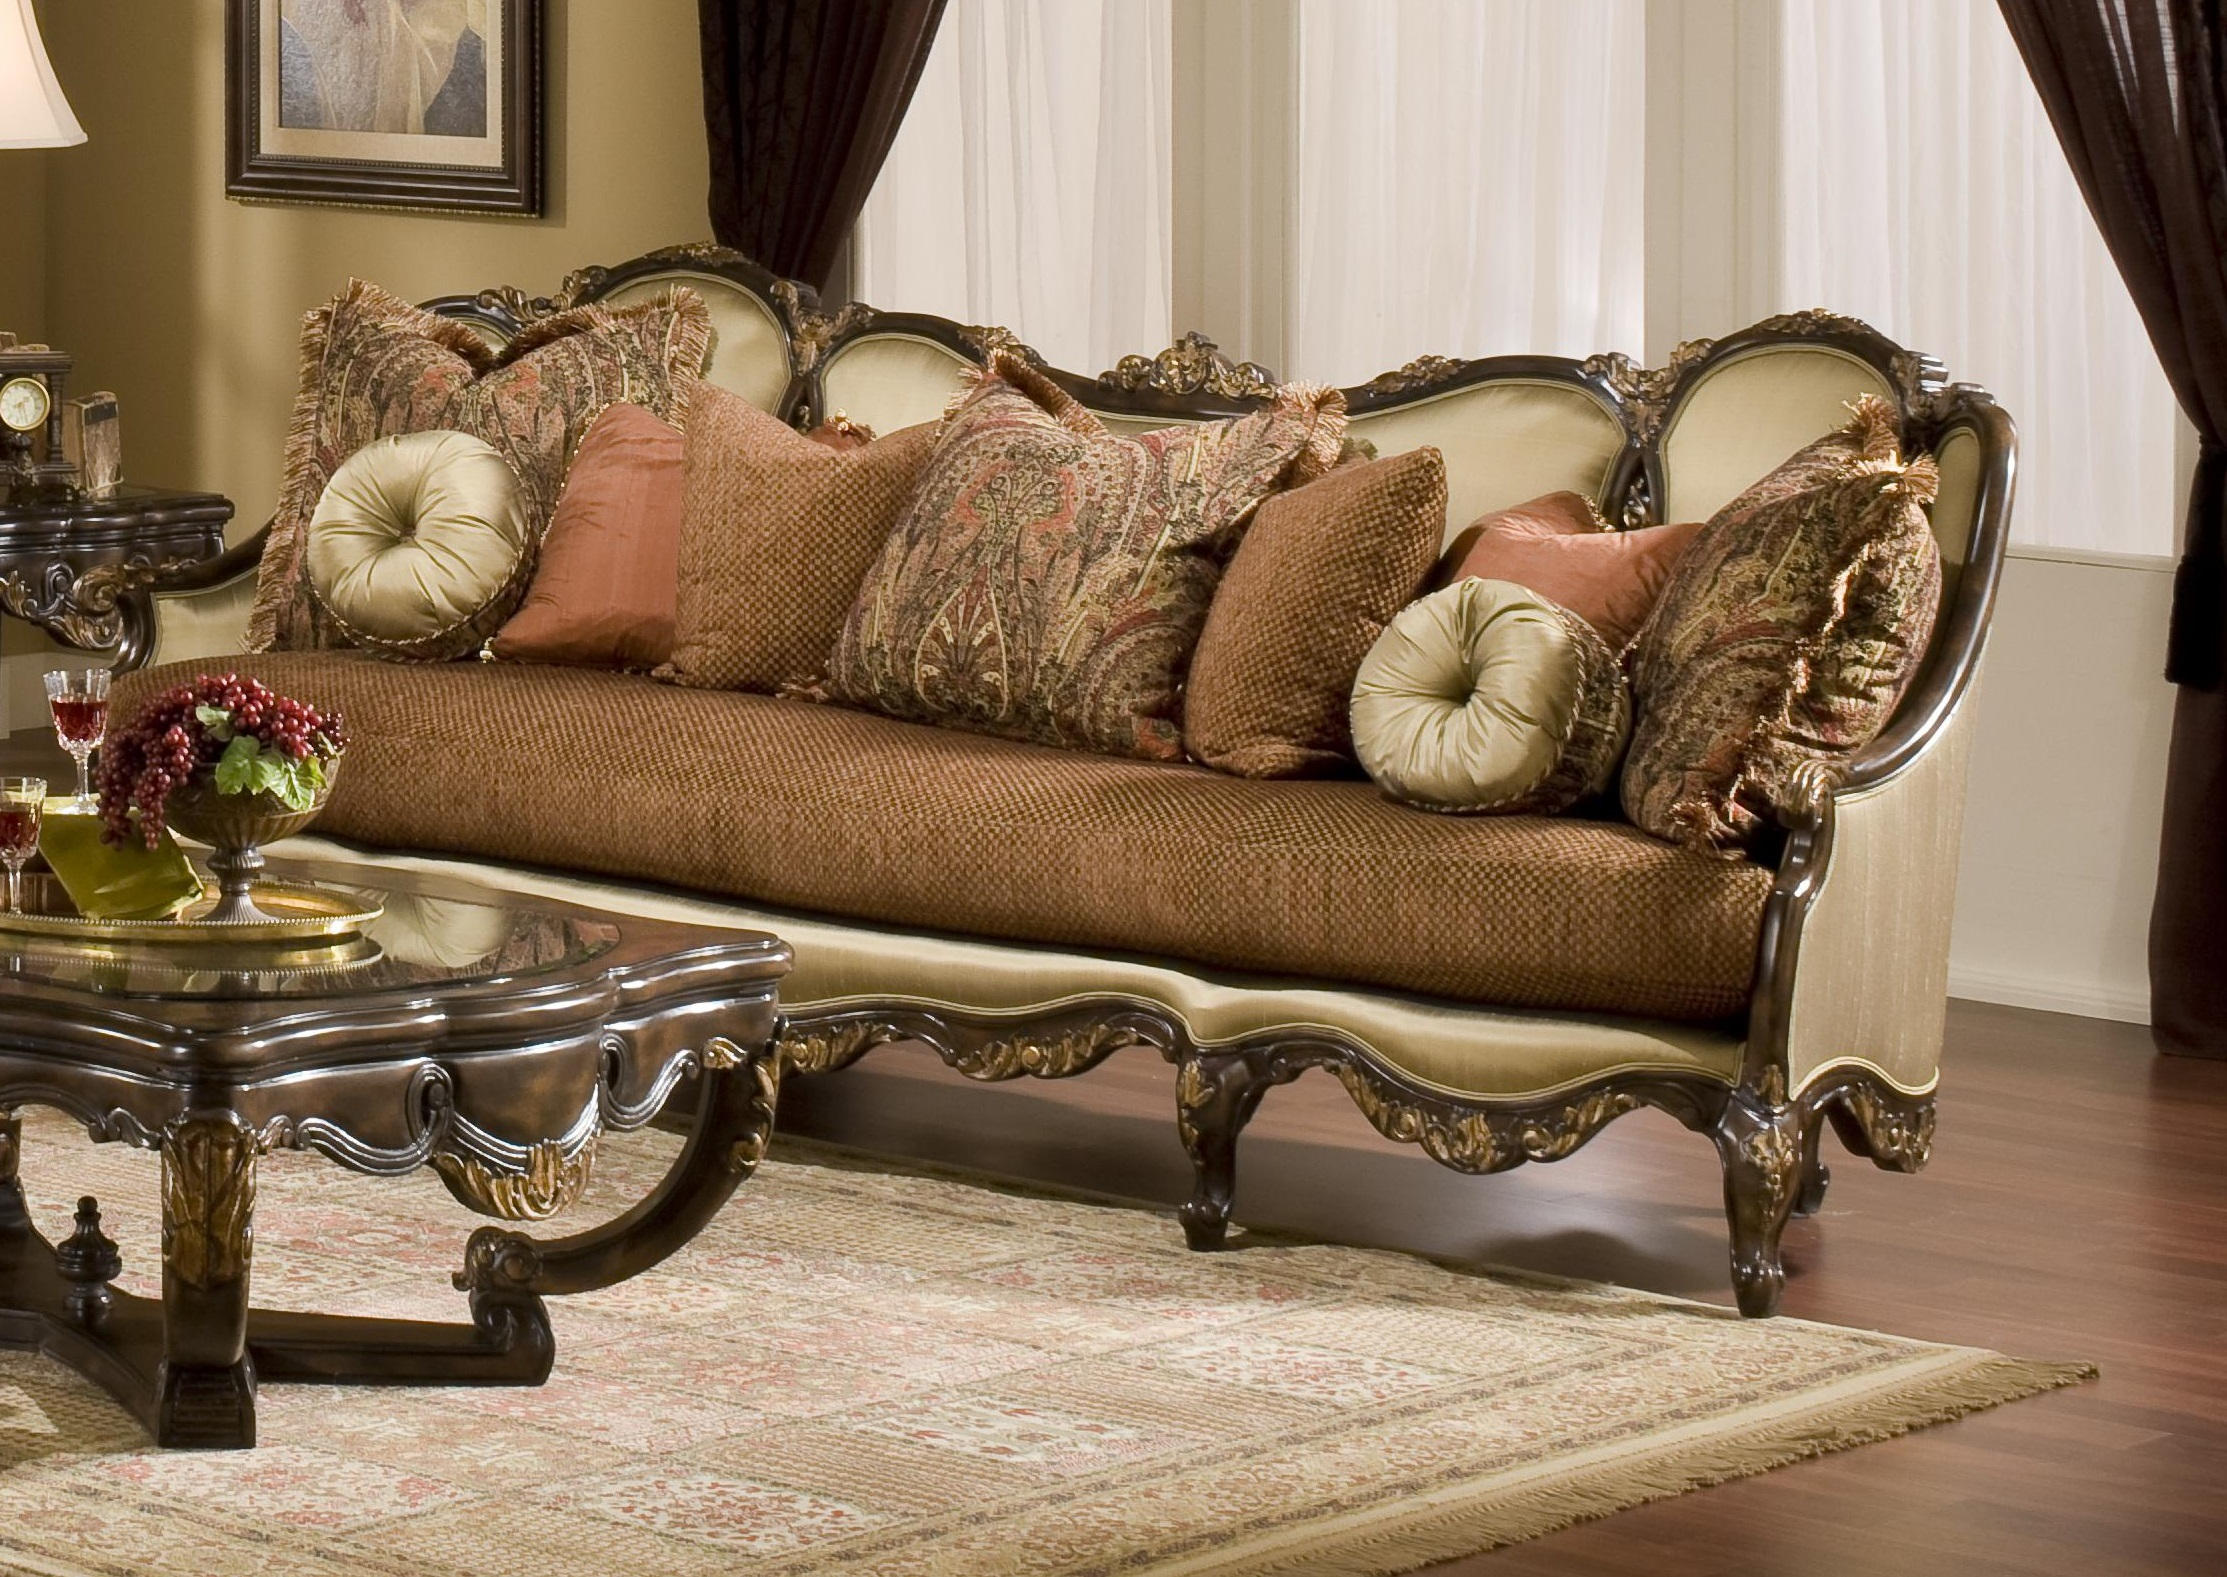 Awesome Wood Trim Sofa 96 About Remodel Sofas and Couches Ideas with Wood Trim Sofa